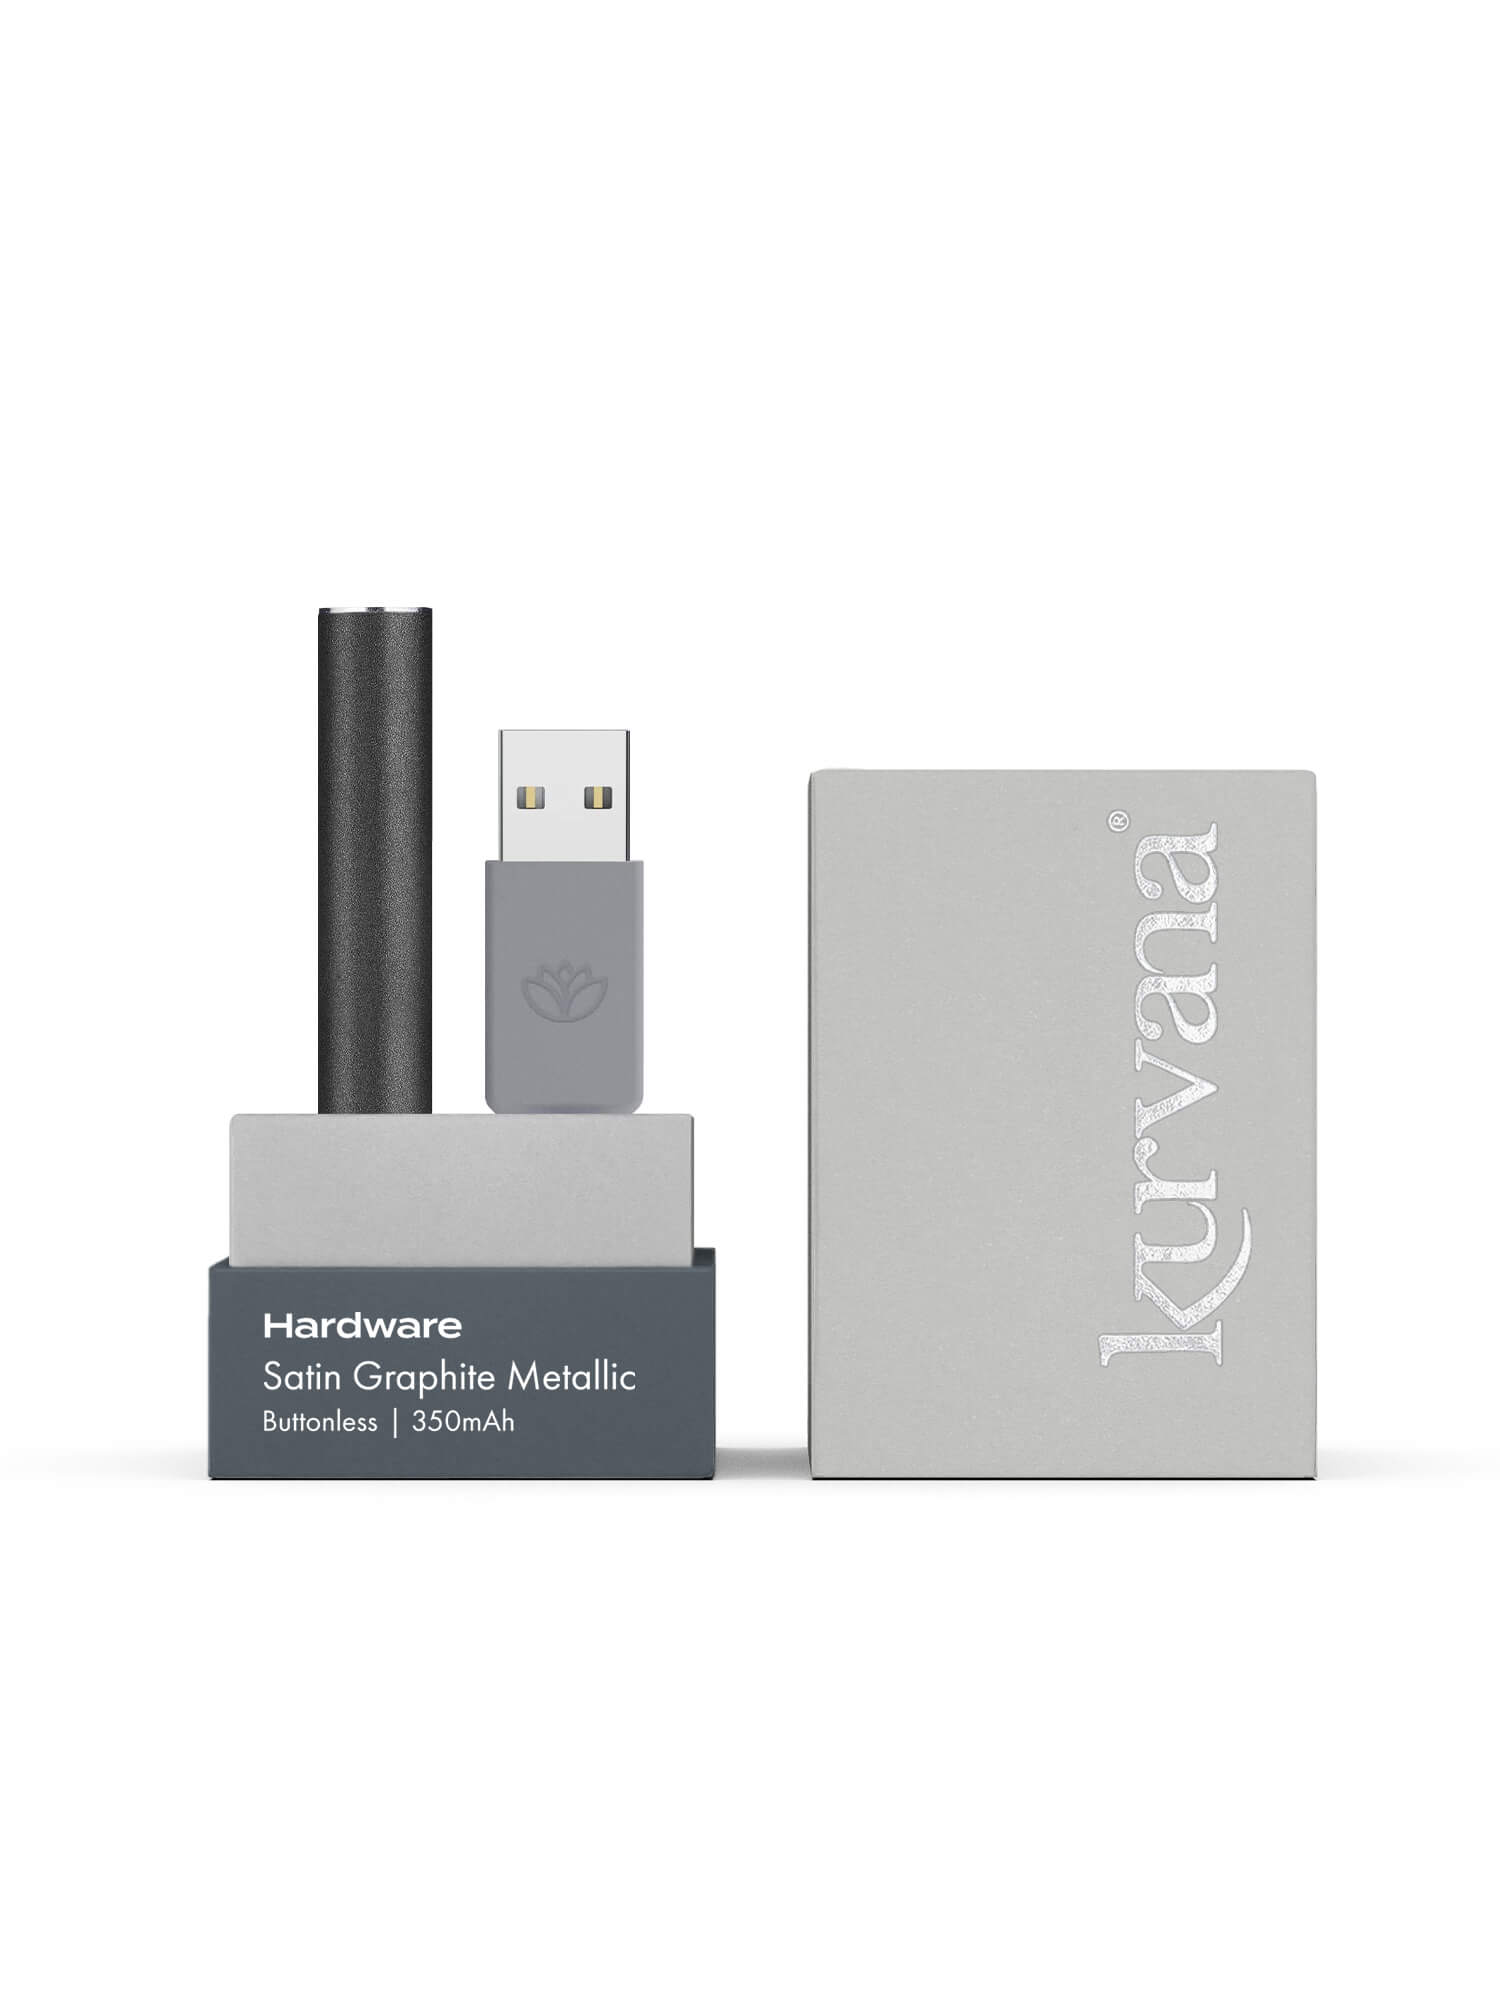 Satin Graphite Metallic  —  Slim Buttonless Battery - KurvanaCBD